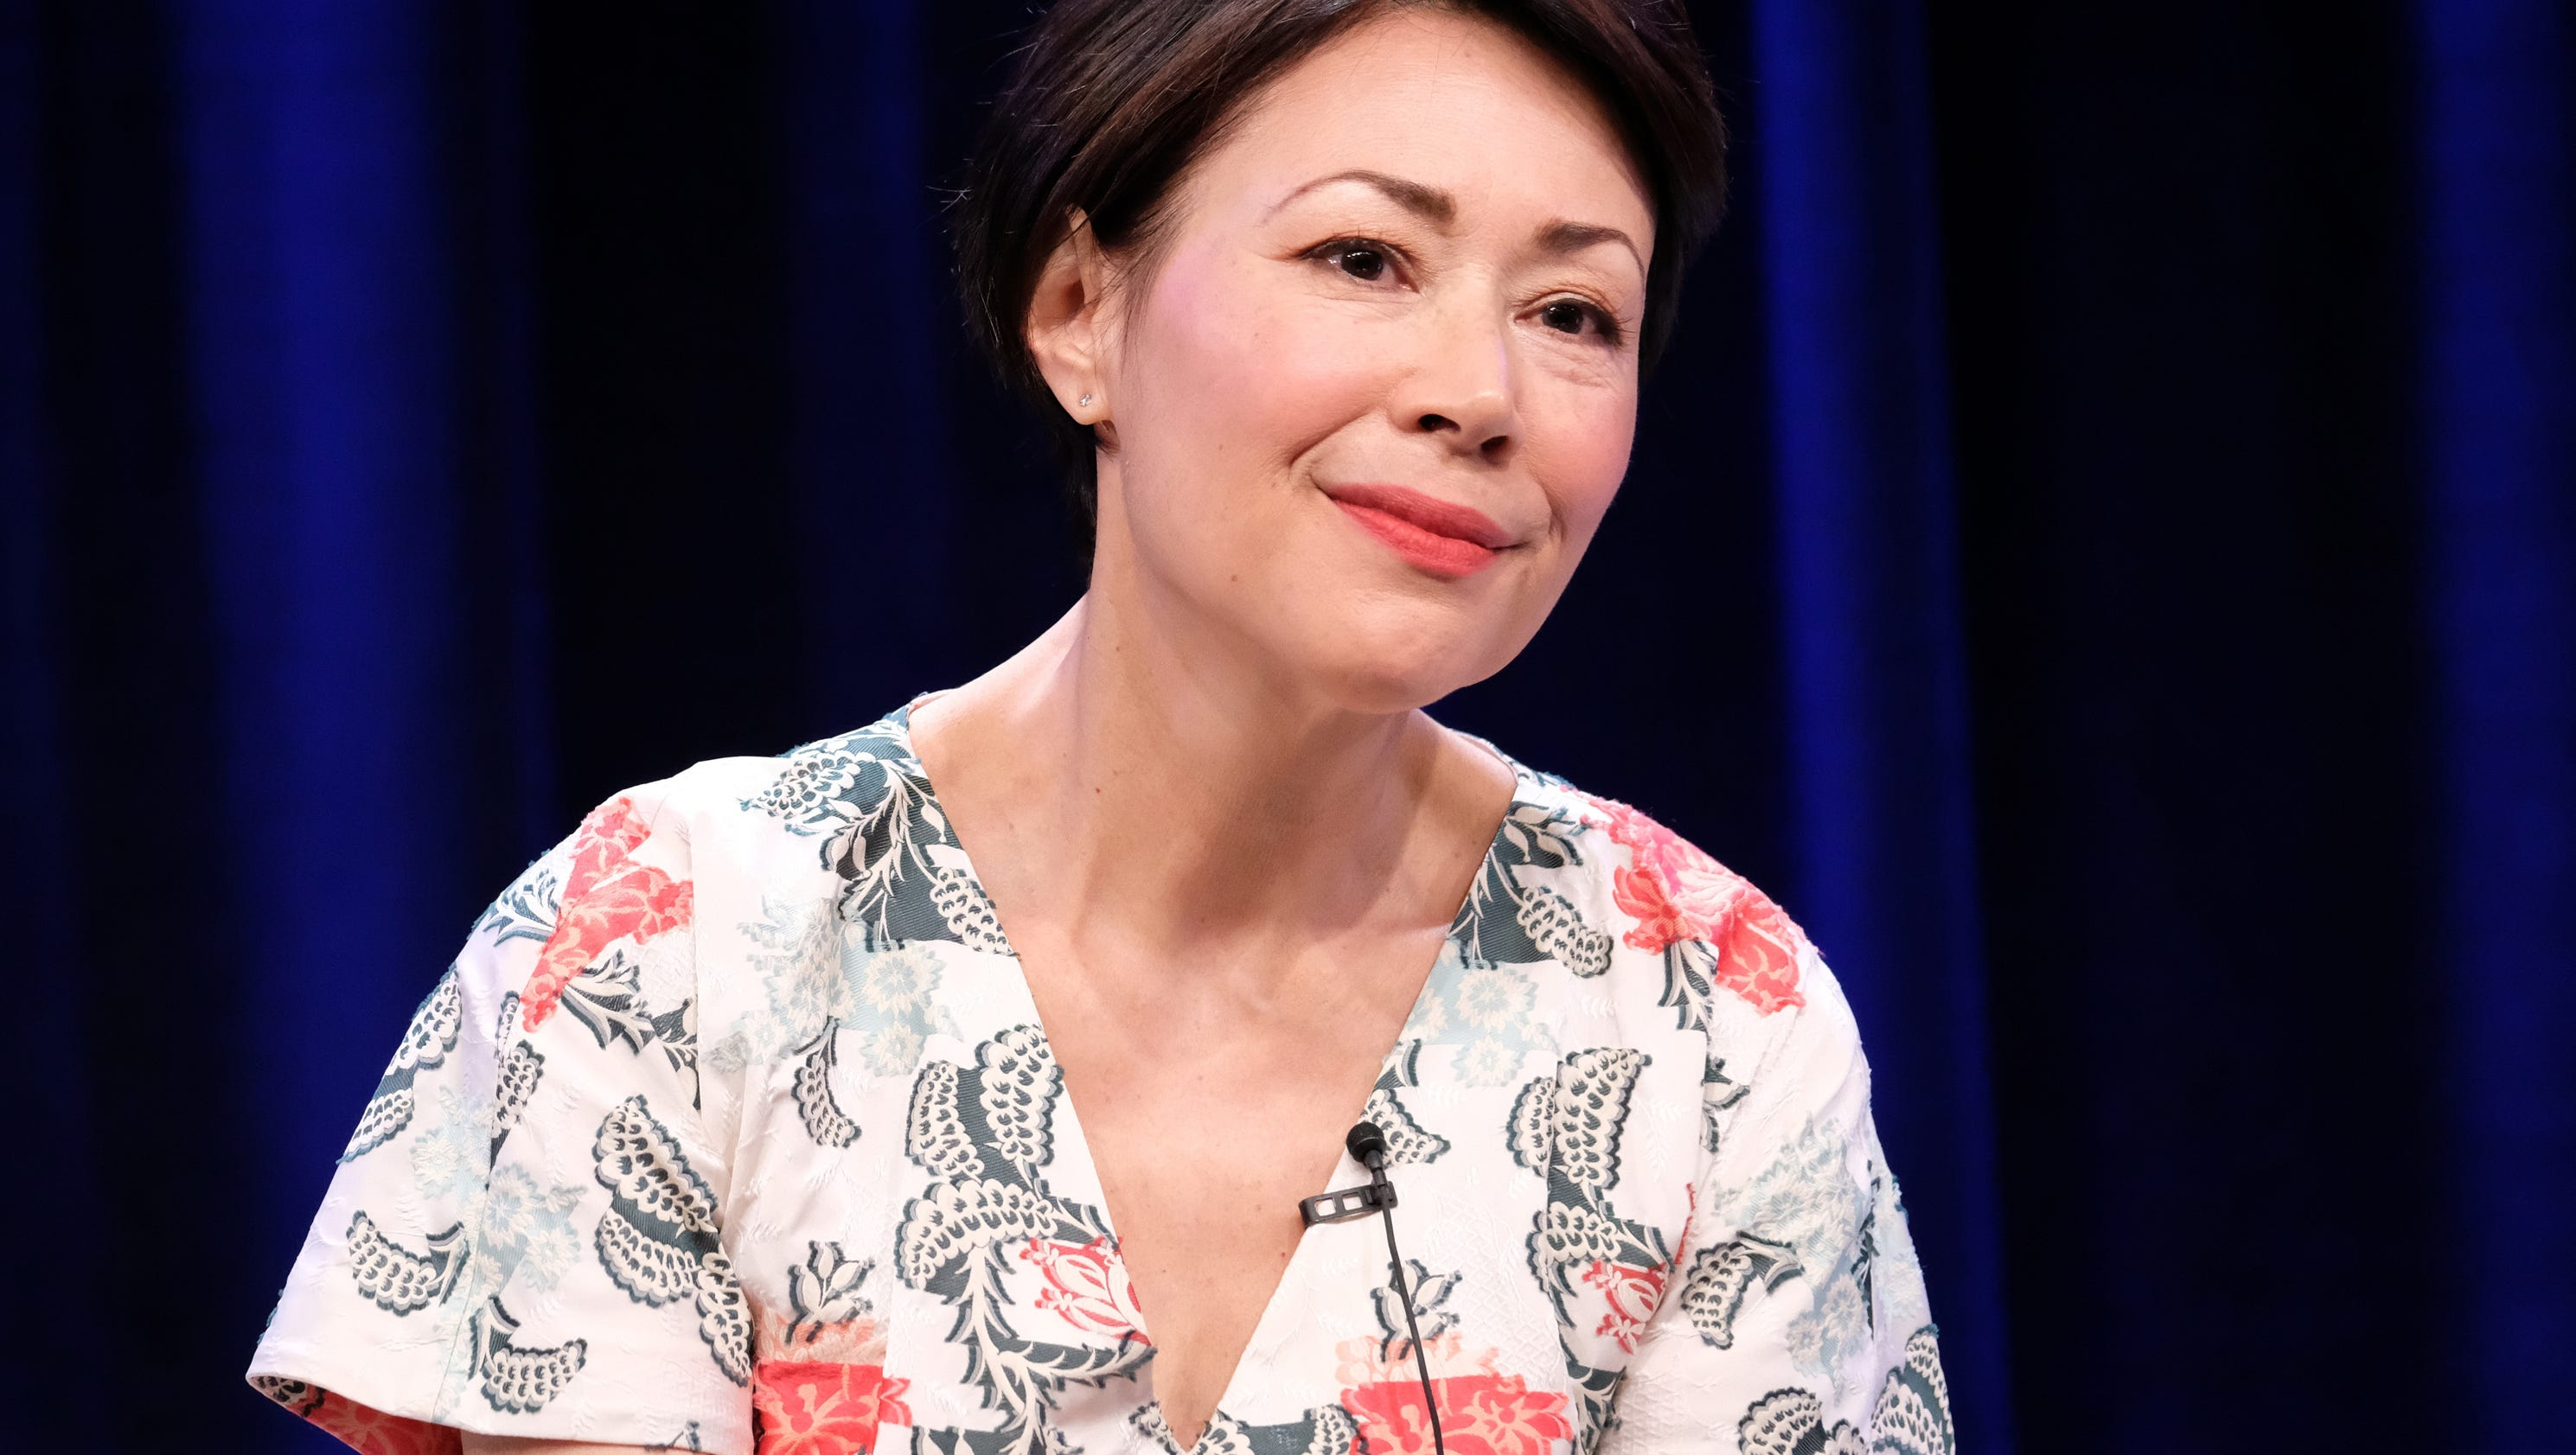 Ann Curry breaks silence on Matt Lauer: 'I'm not surprised by the allegations'